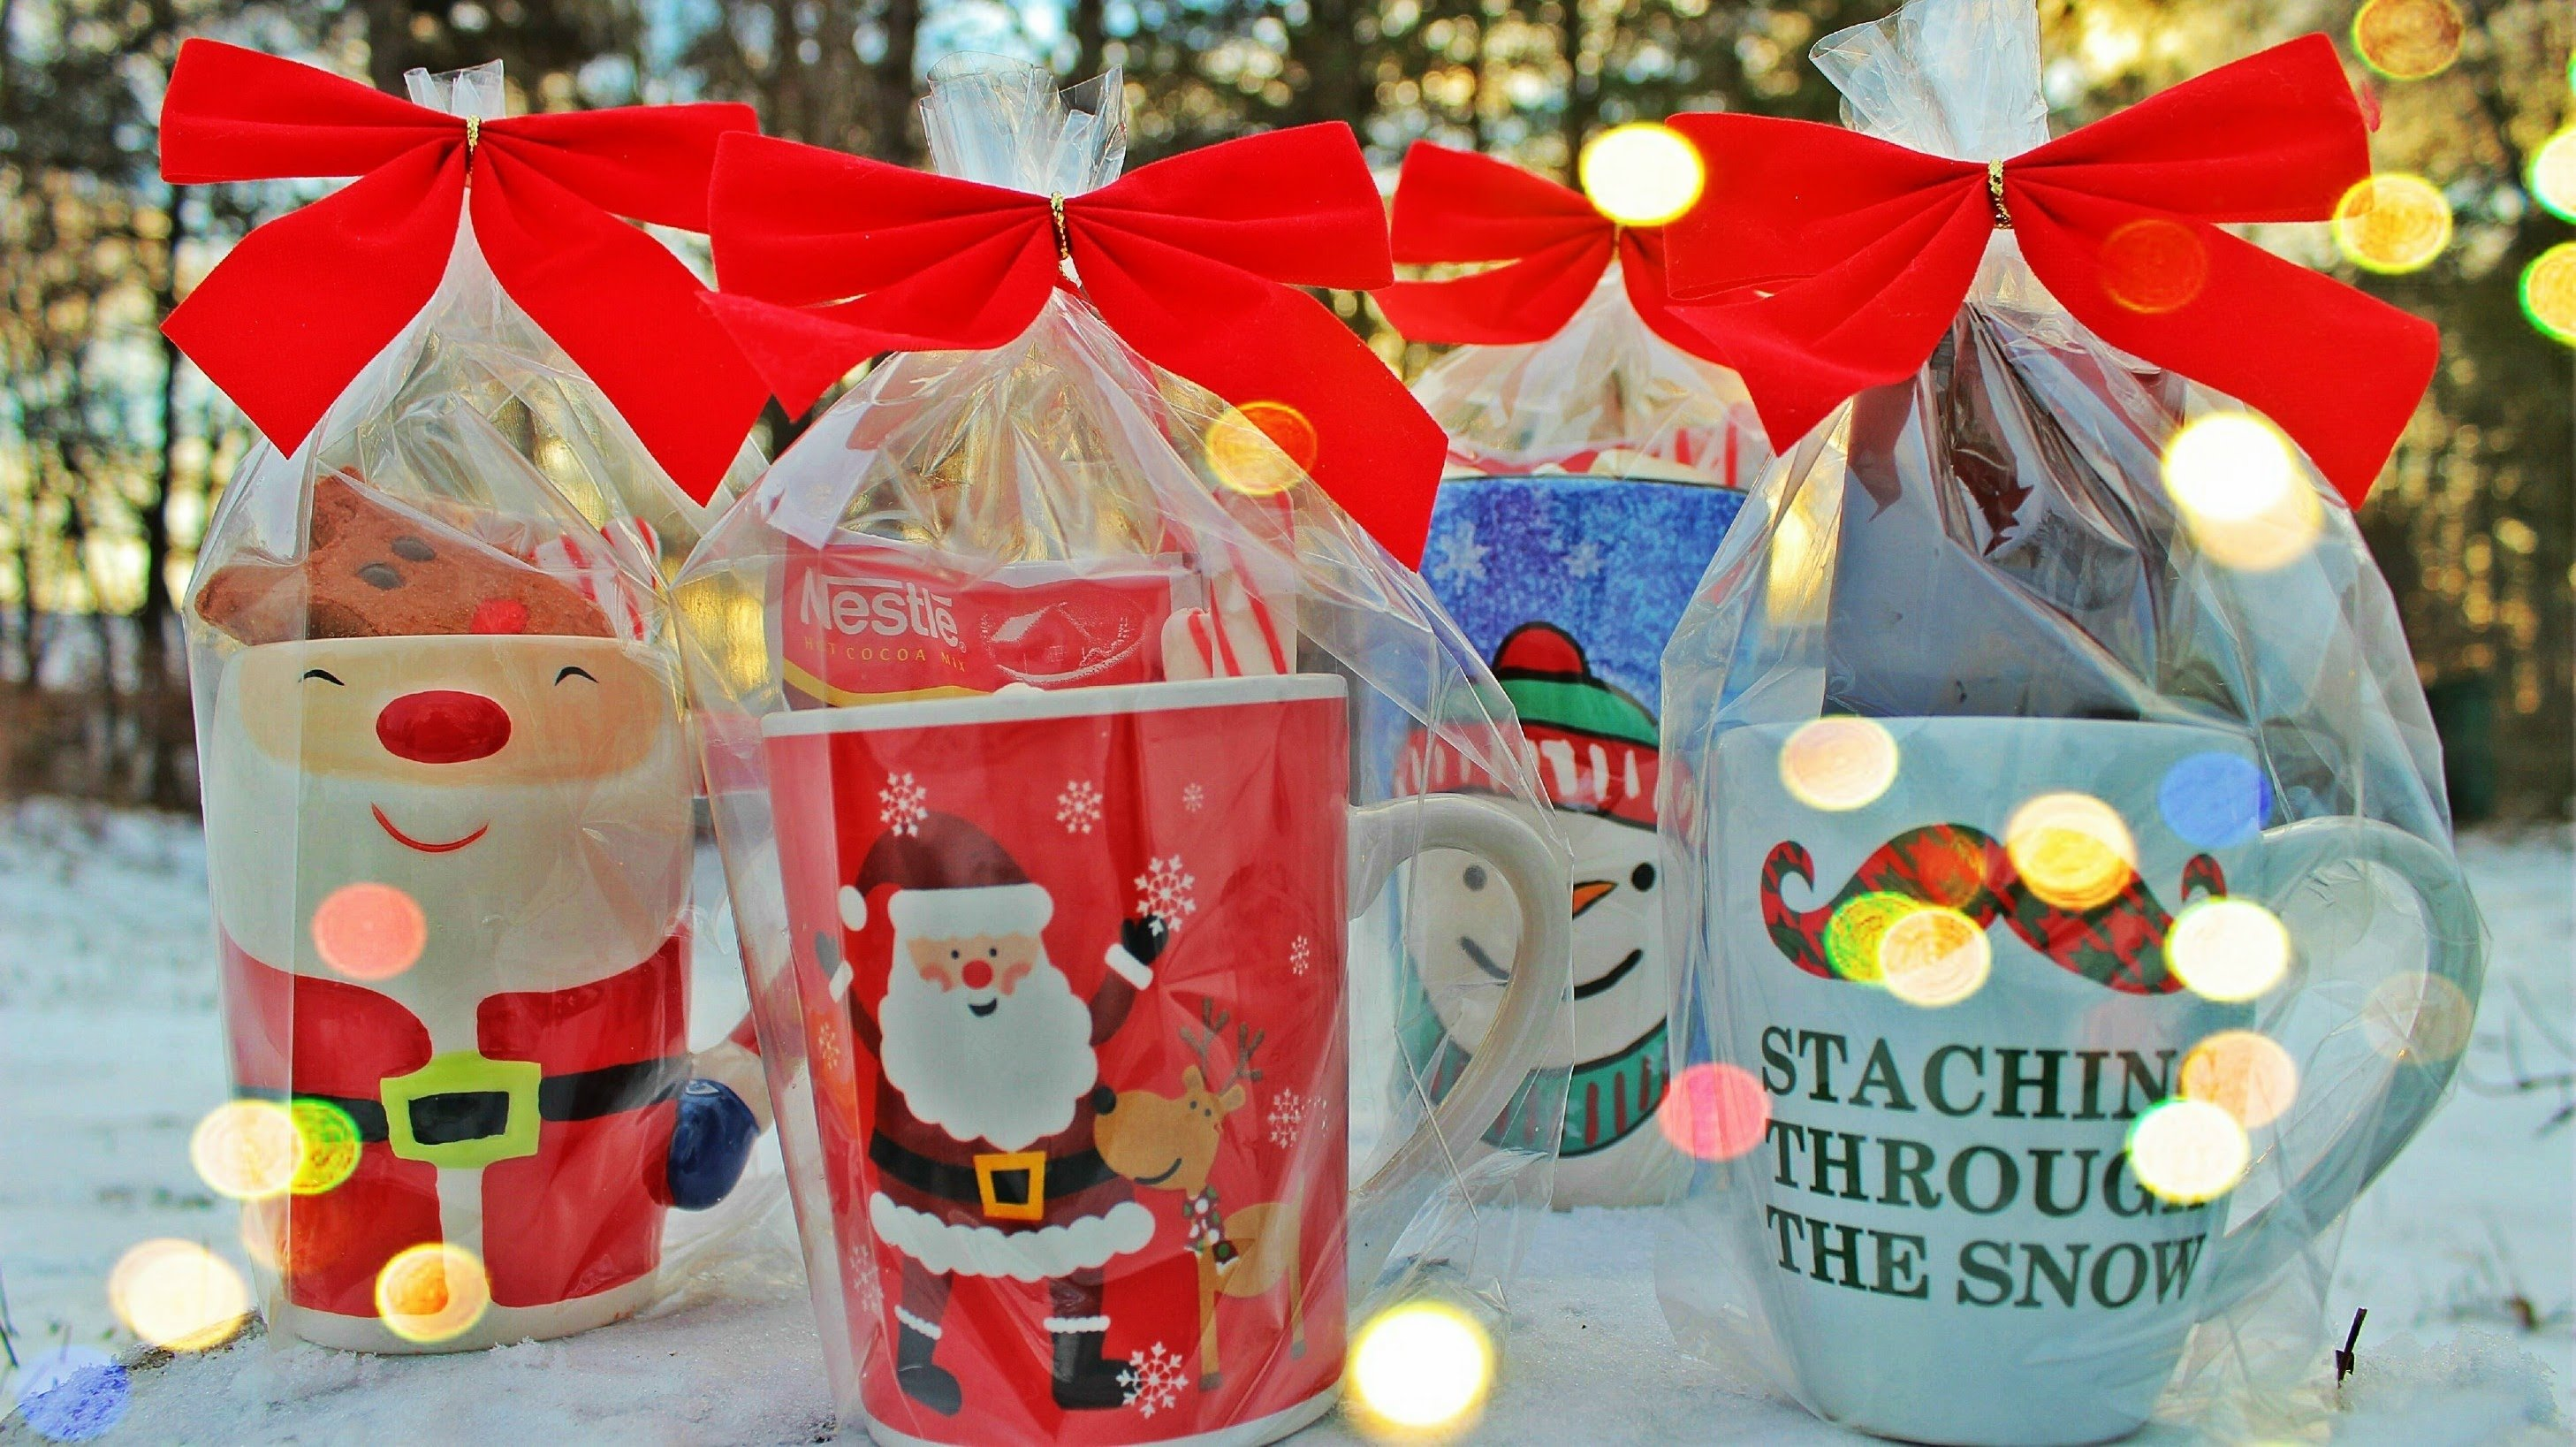 10 Stylish Christmas Gift Ideas On A Budget diy inexpensive christmas gift ideas youtube 2